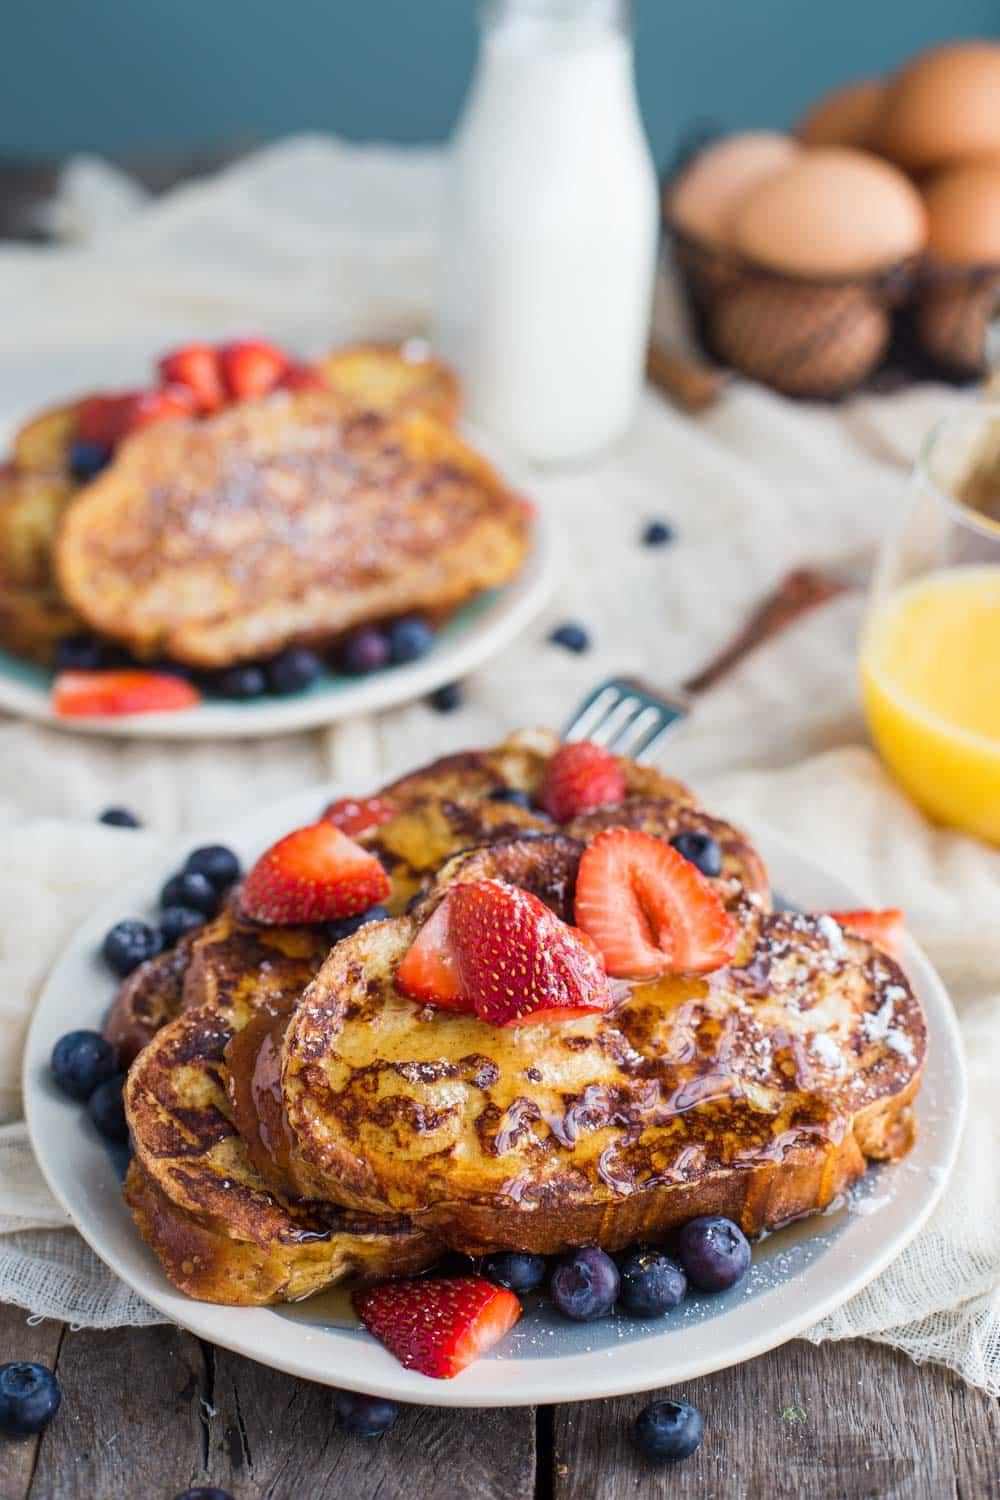 Easy French Toast- this recipe is a classic and a staple weekend breakfast in our house! The whole family loves it!